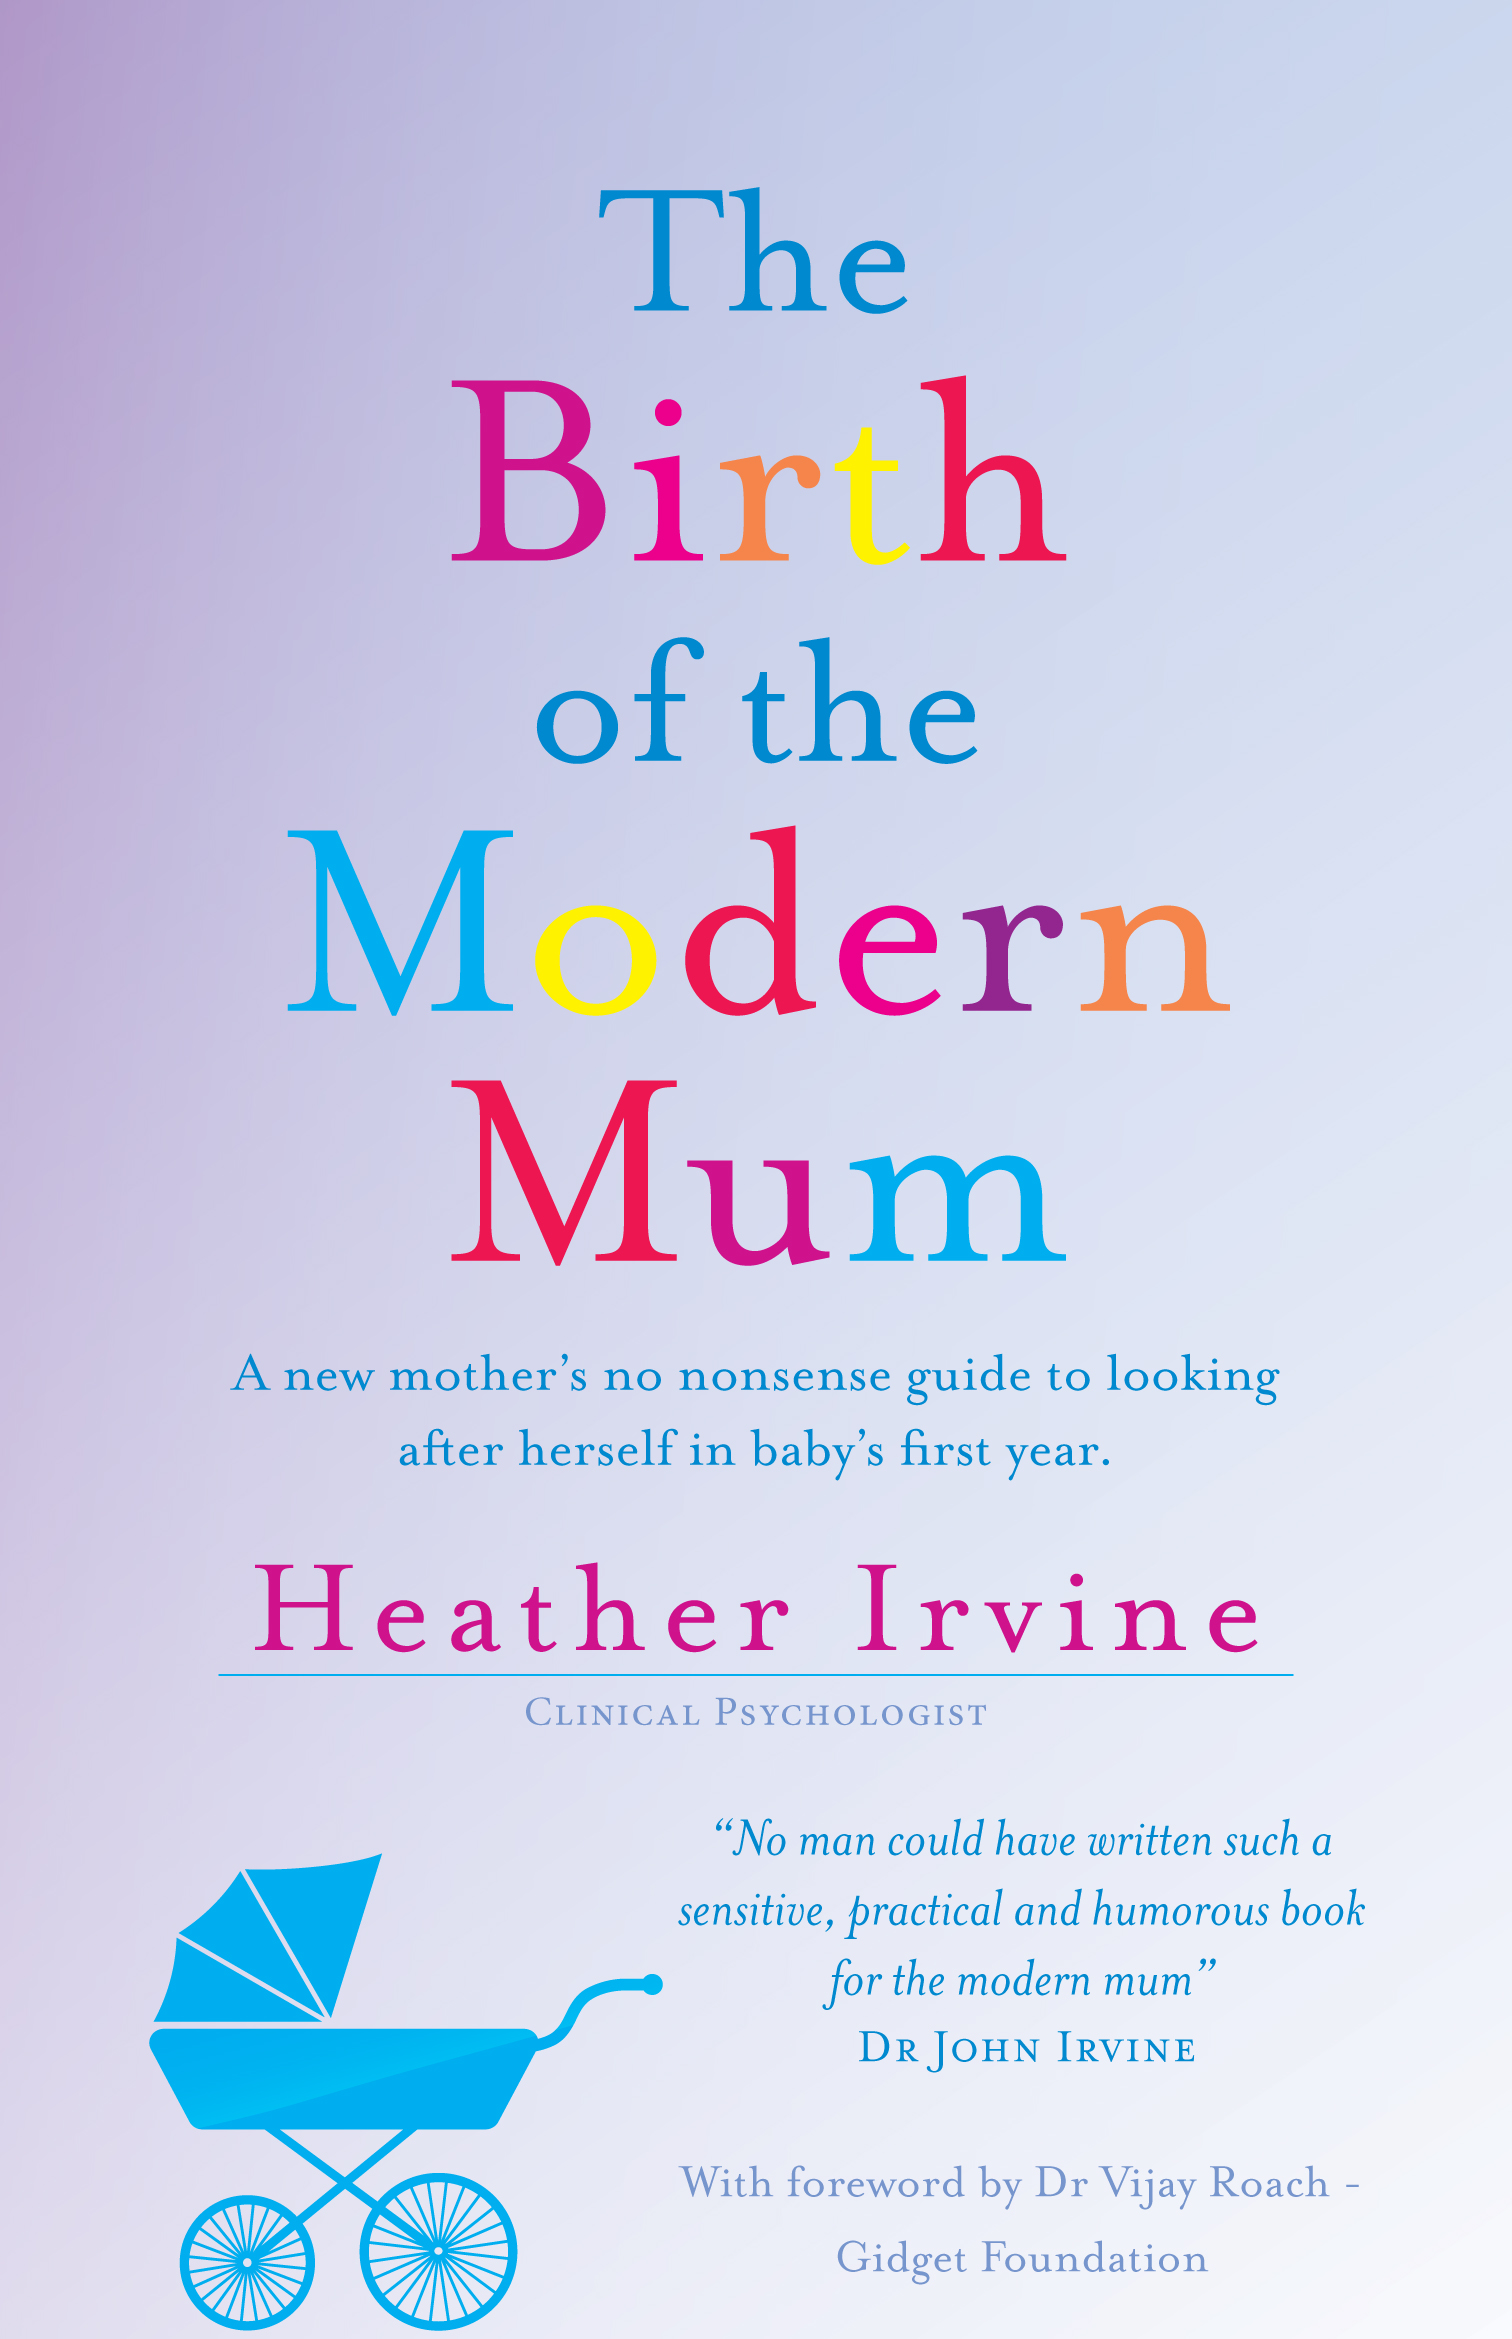 The-Birth-of-the-modern-mum